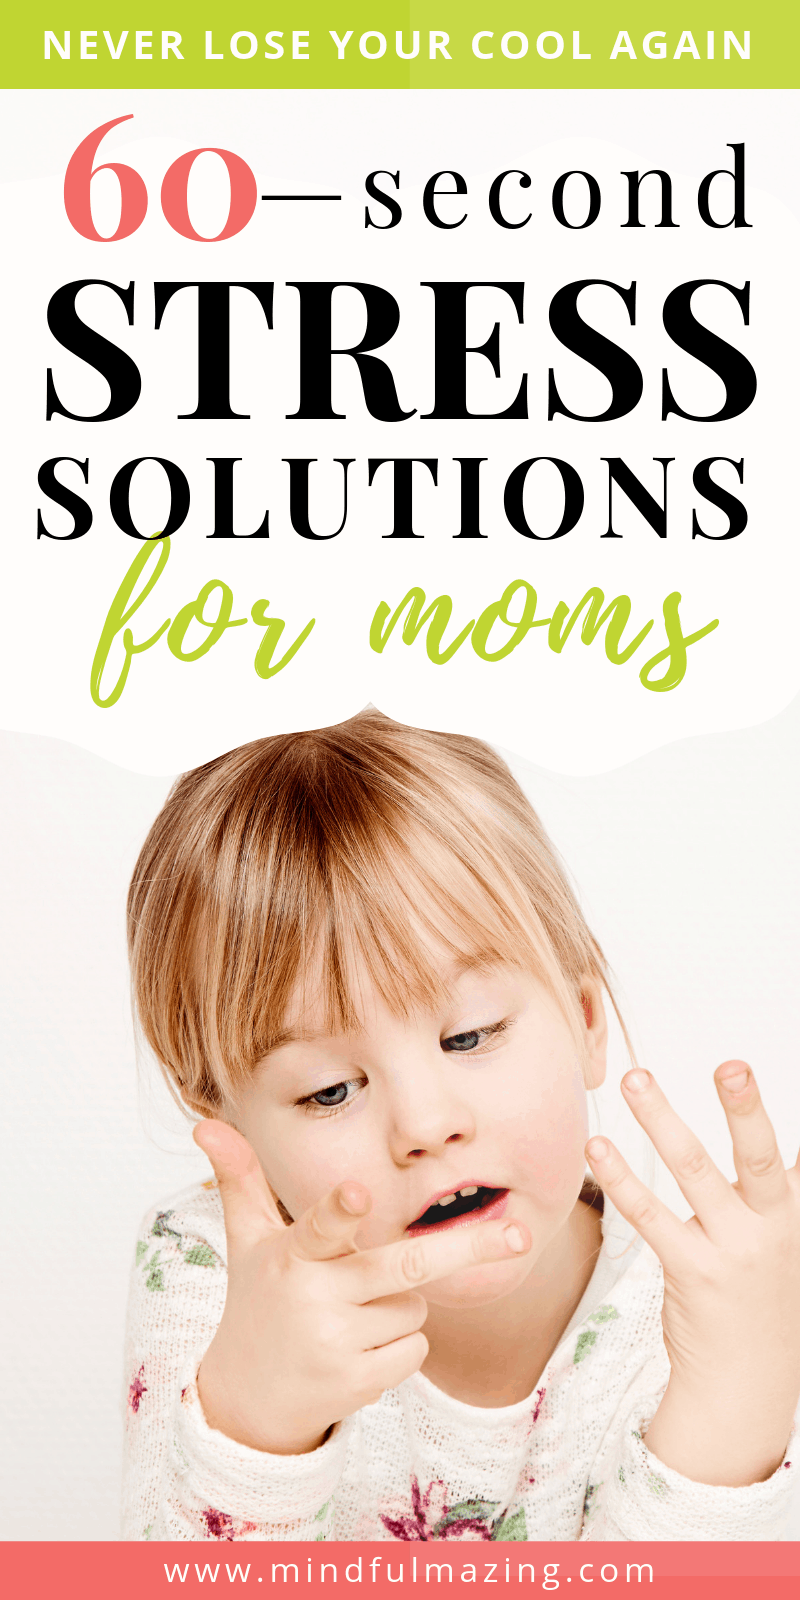 Try these three quick and simple relaxation techniques for moms to reclaim stressful moments. By investing 60-seconds of your time and focus, you can set a tone of peace and calm. #relaxationtechniques